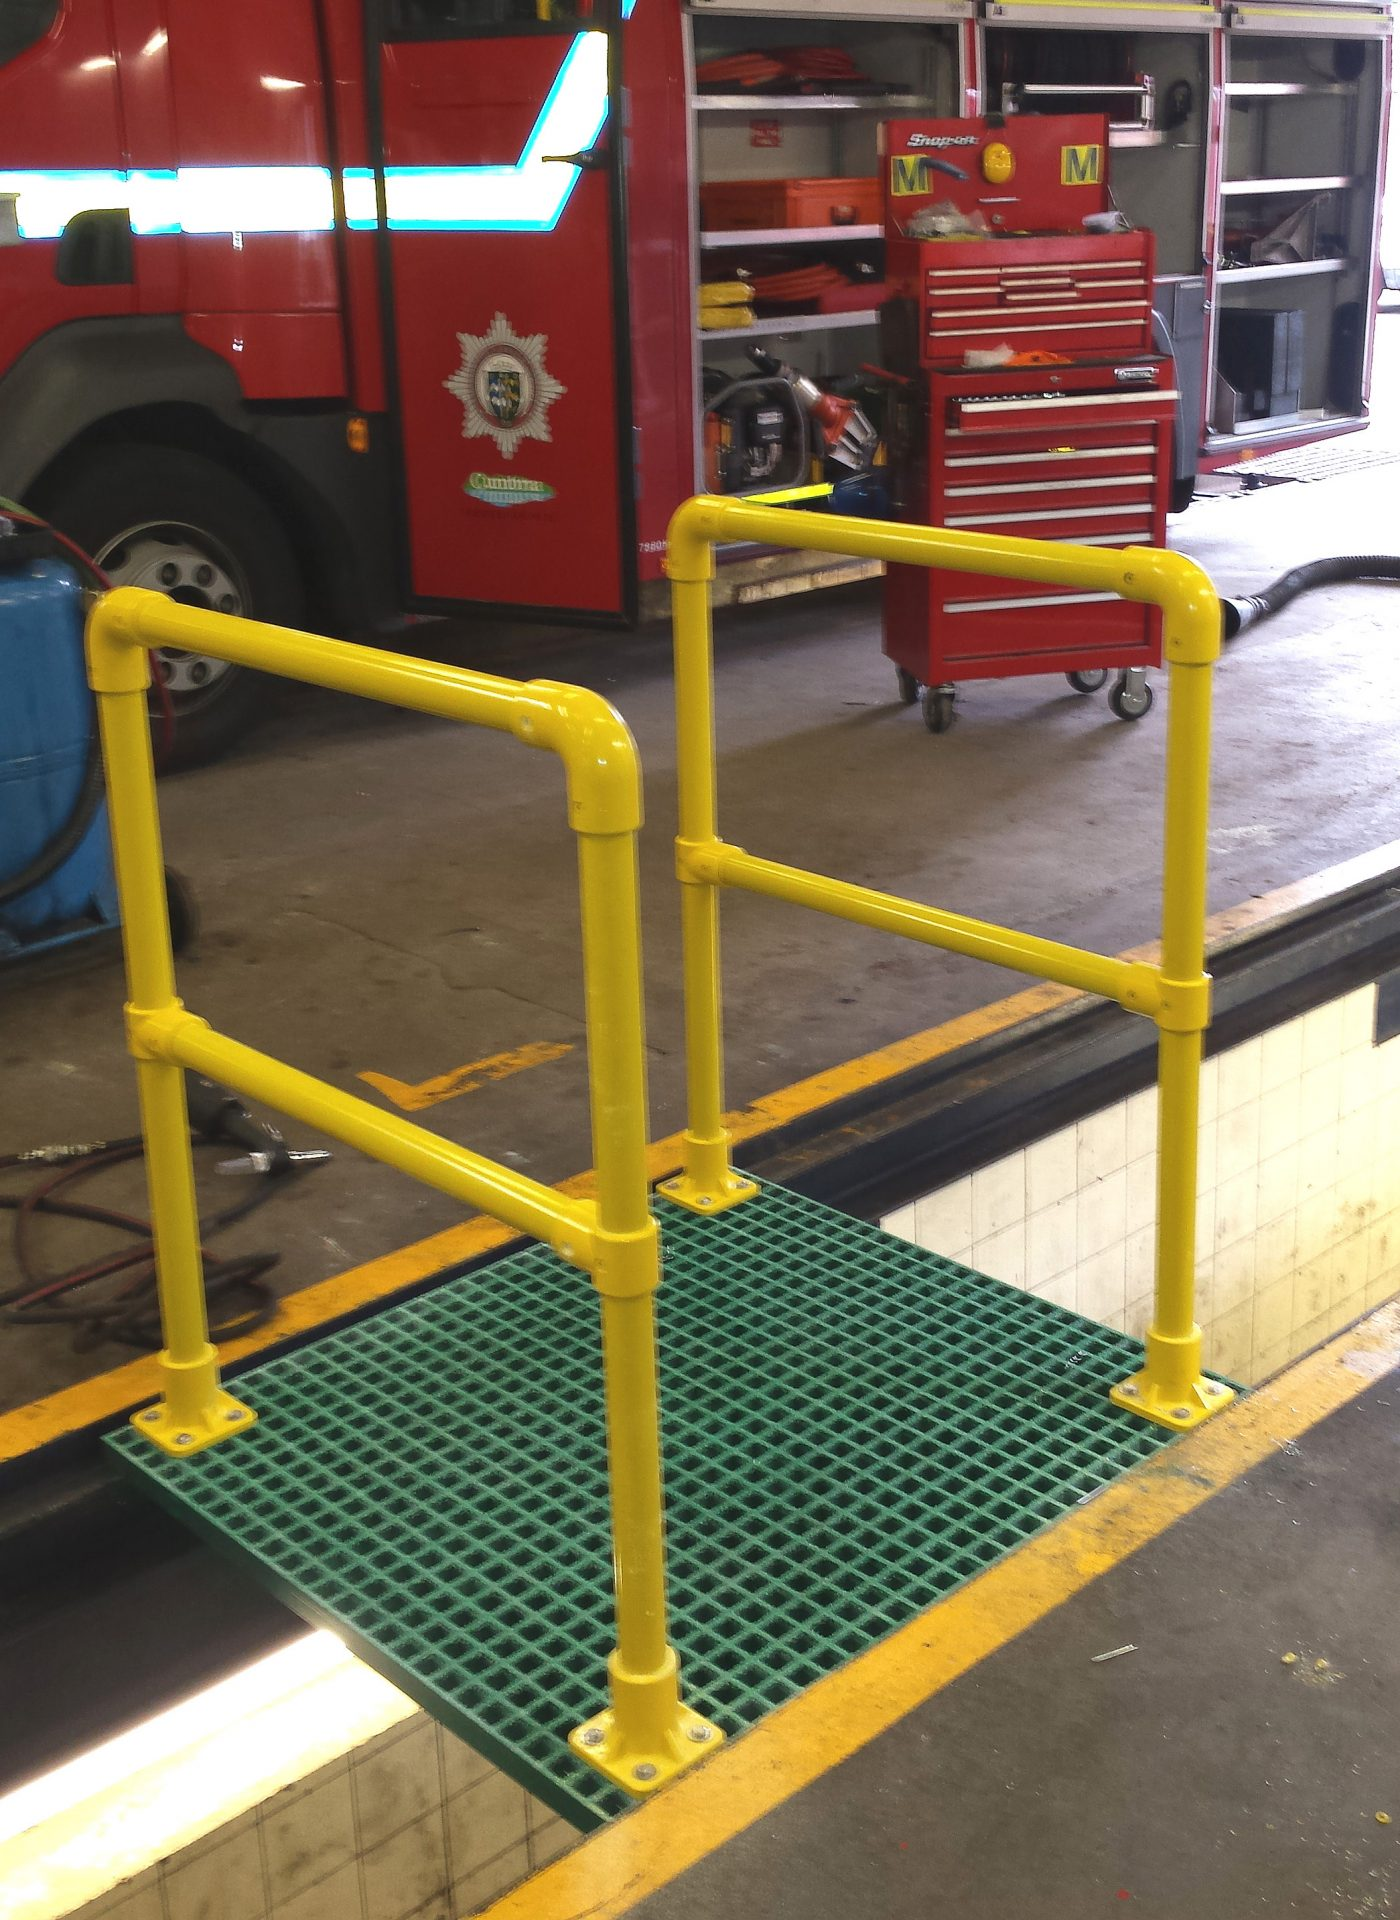 GRP grating inspection pit cover board with handrails